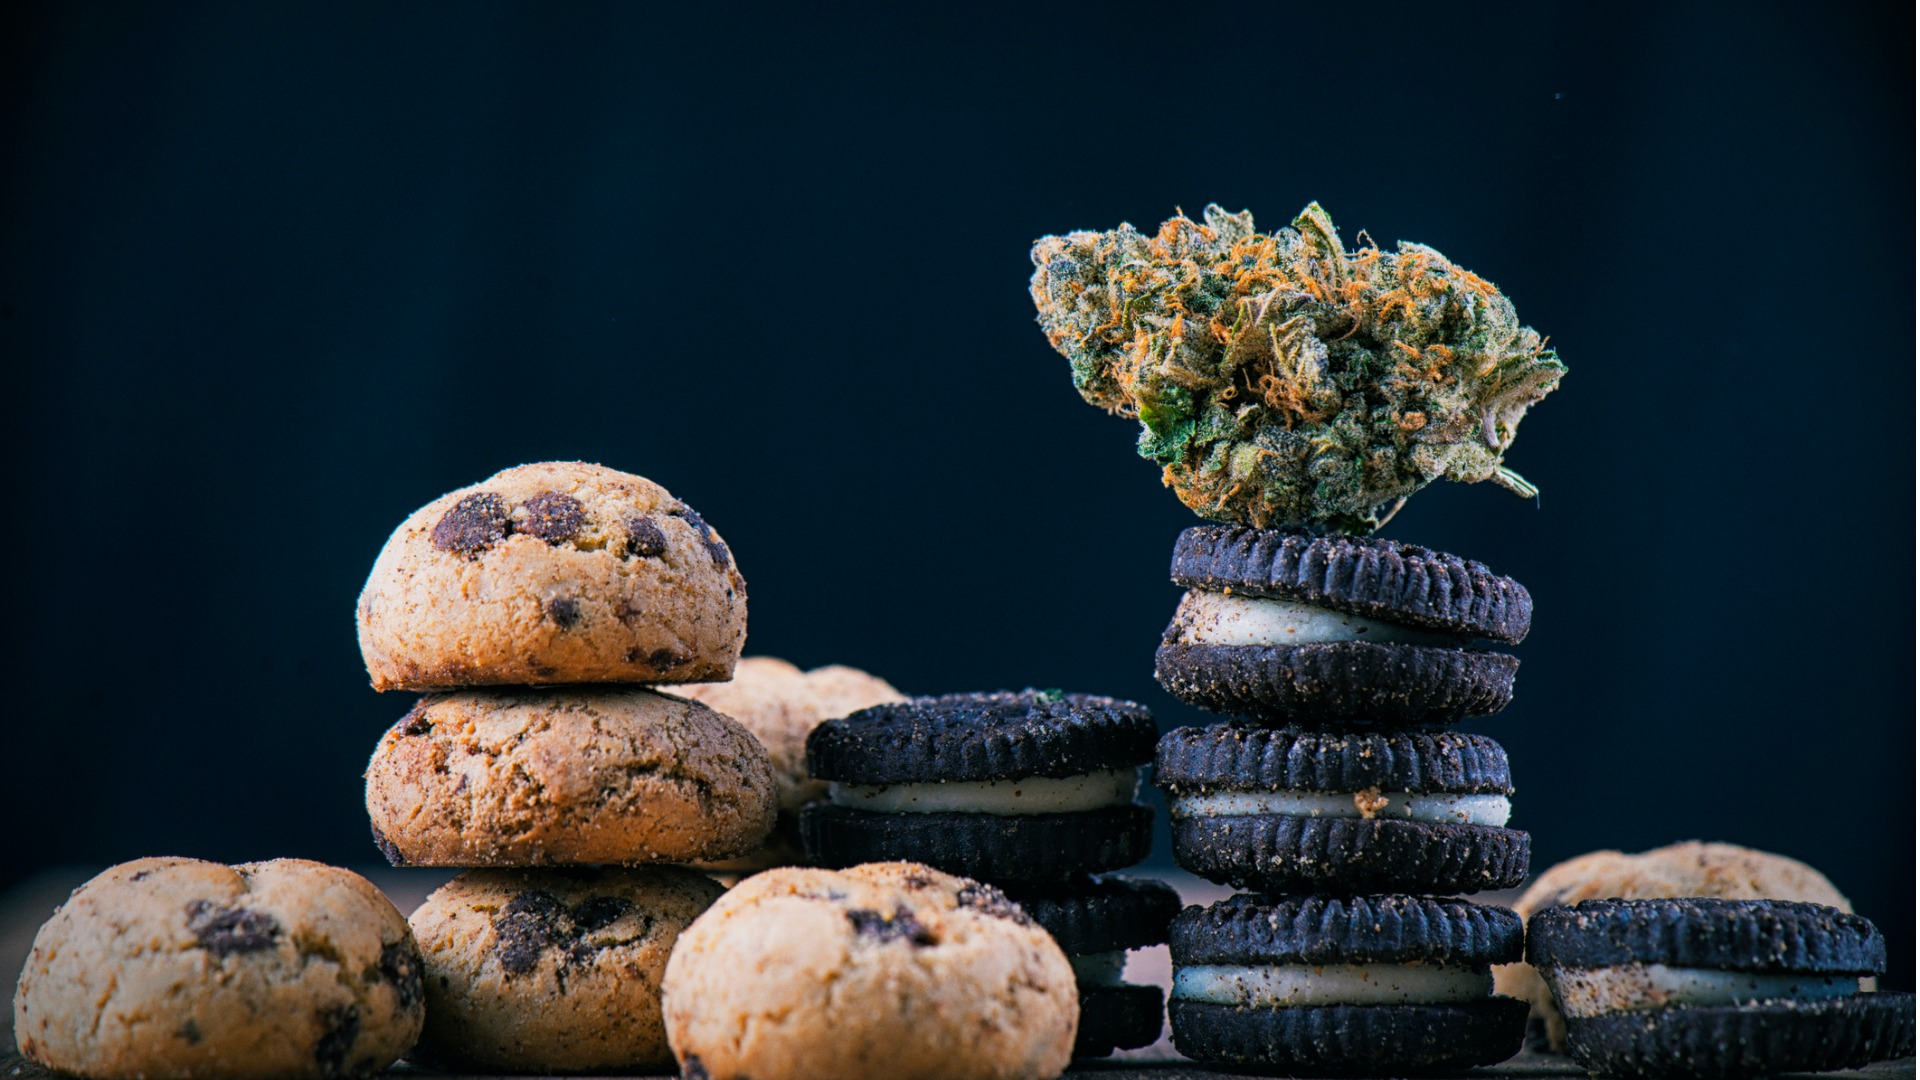 cannabis and edibles